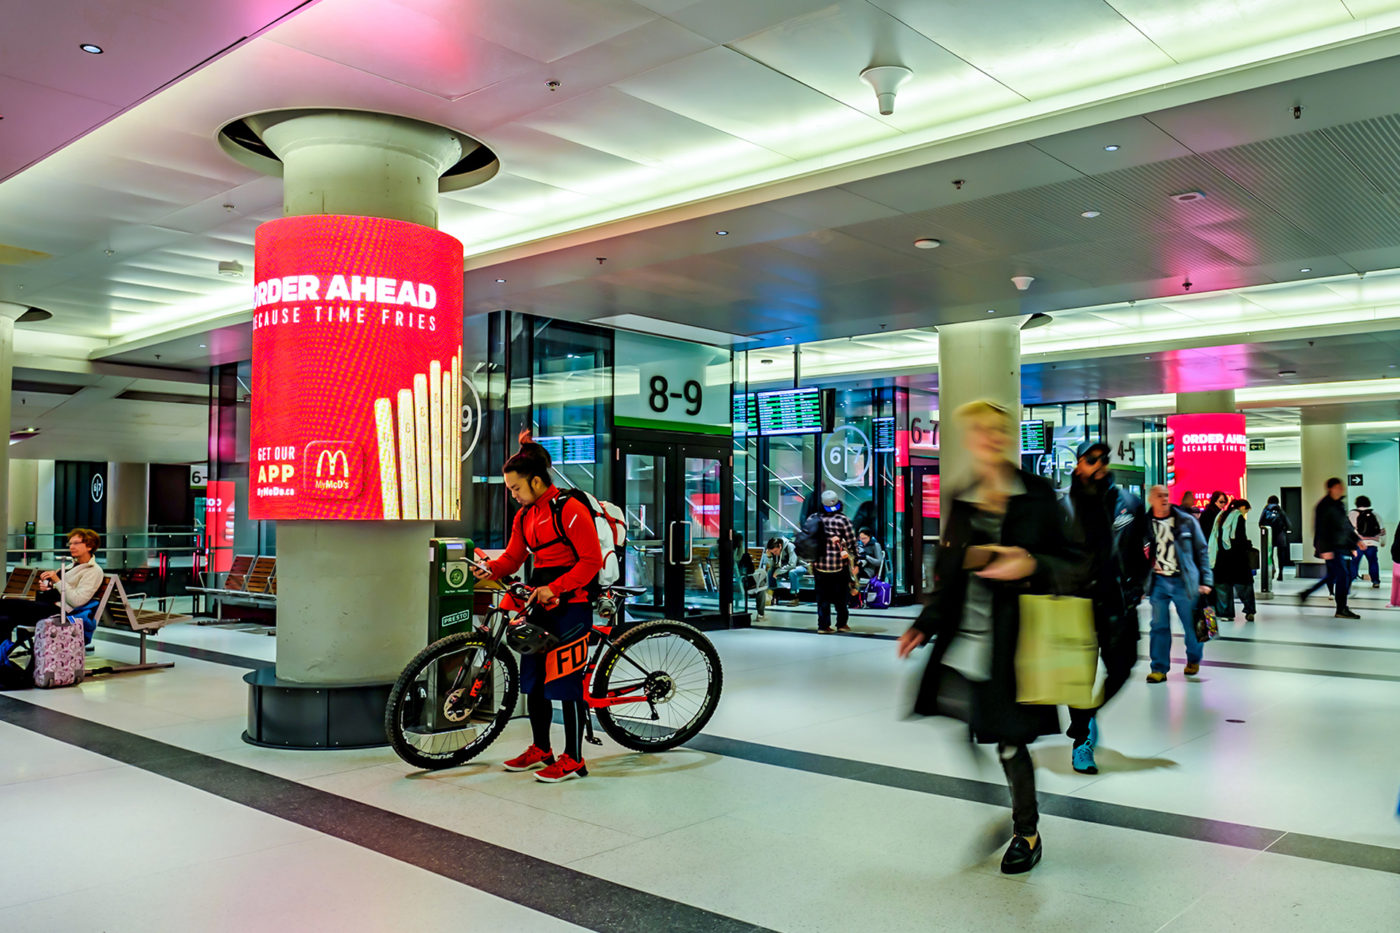 McDonald's - App - Union Station - Digital Column Wraps (Toronto, Ontario)